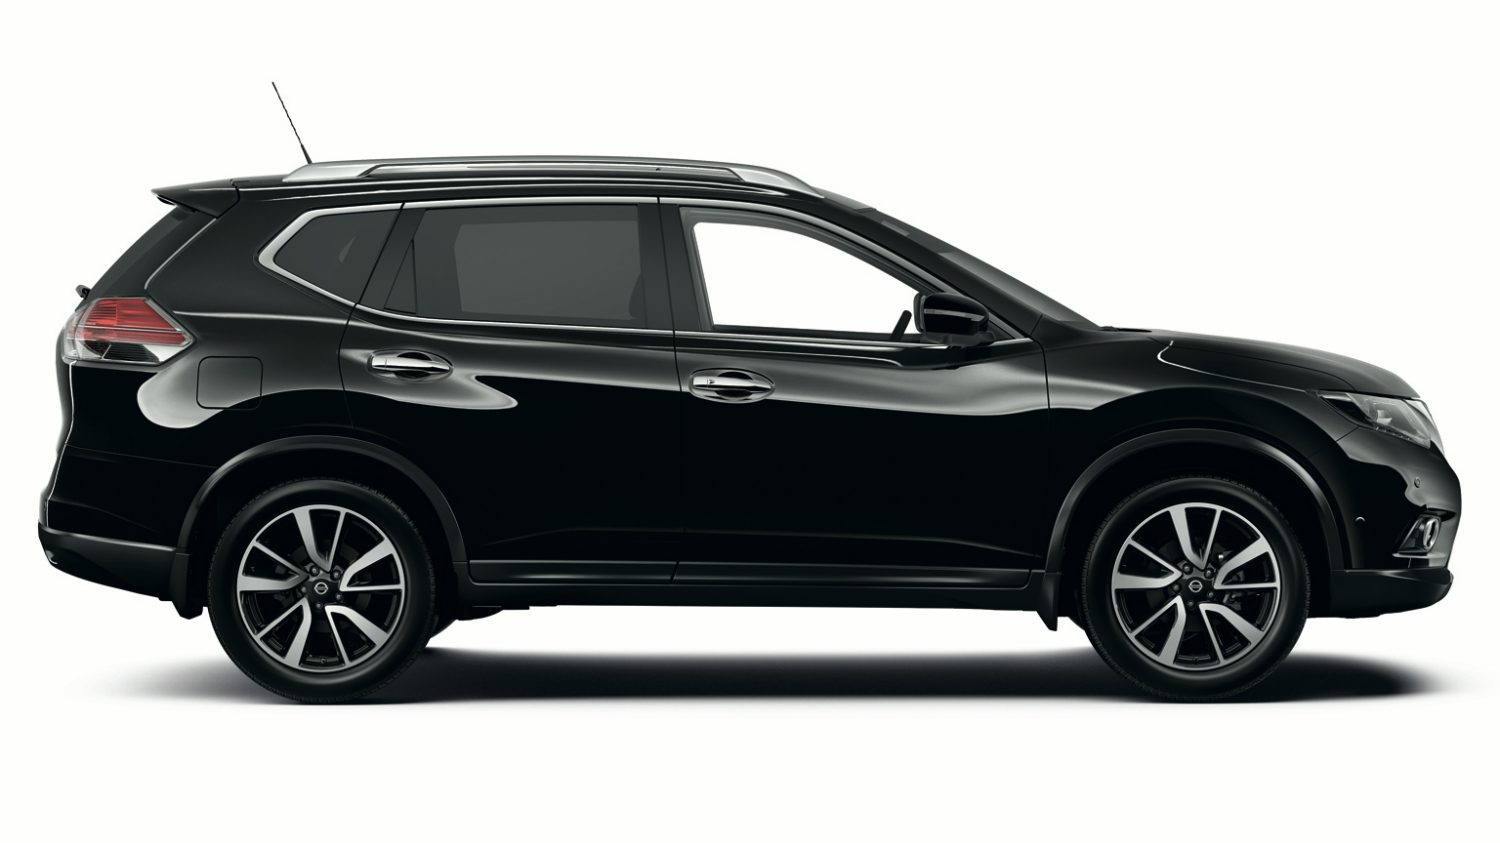 Nissan X-Trail - Crossover